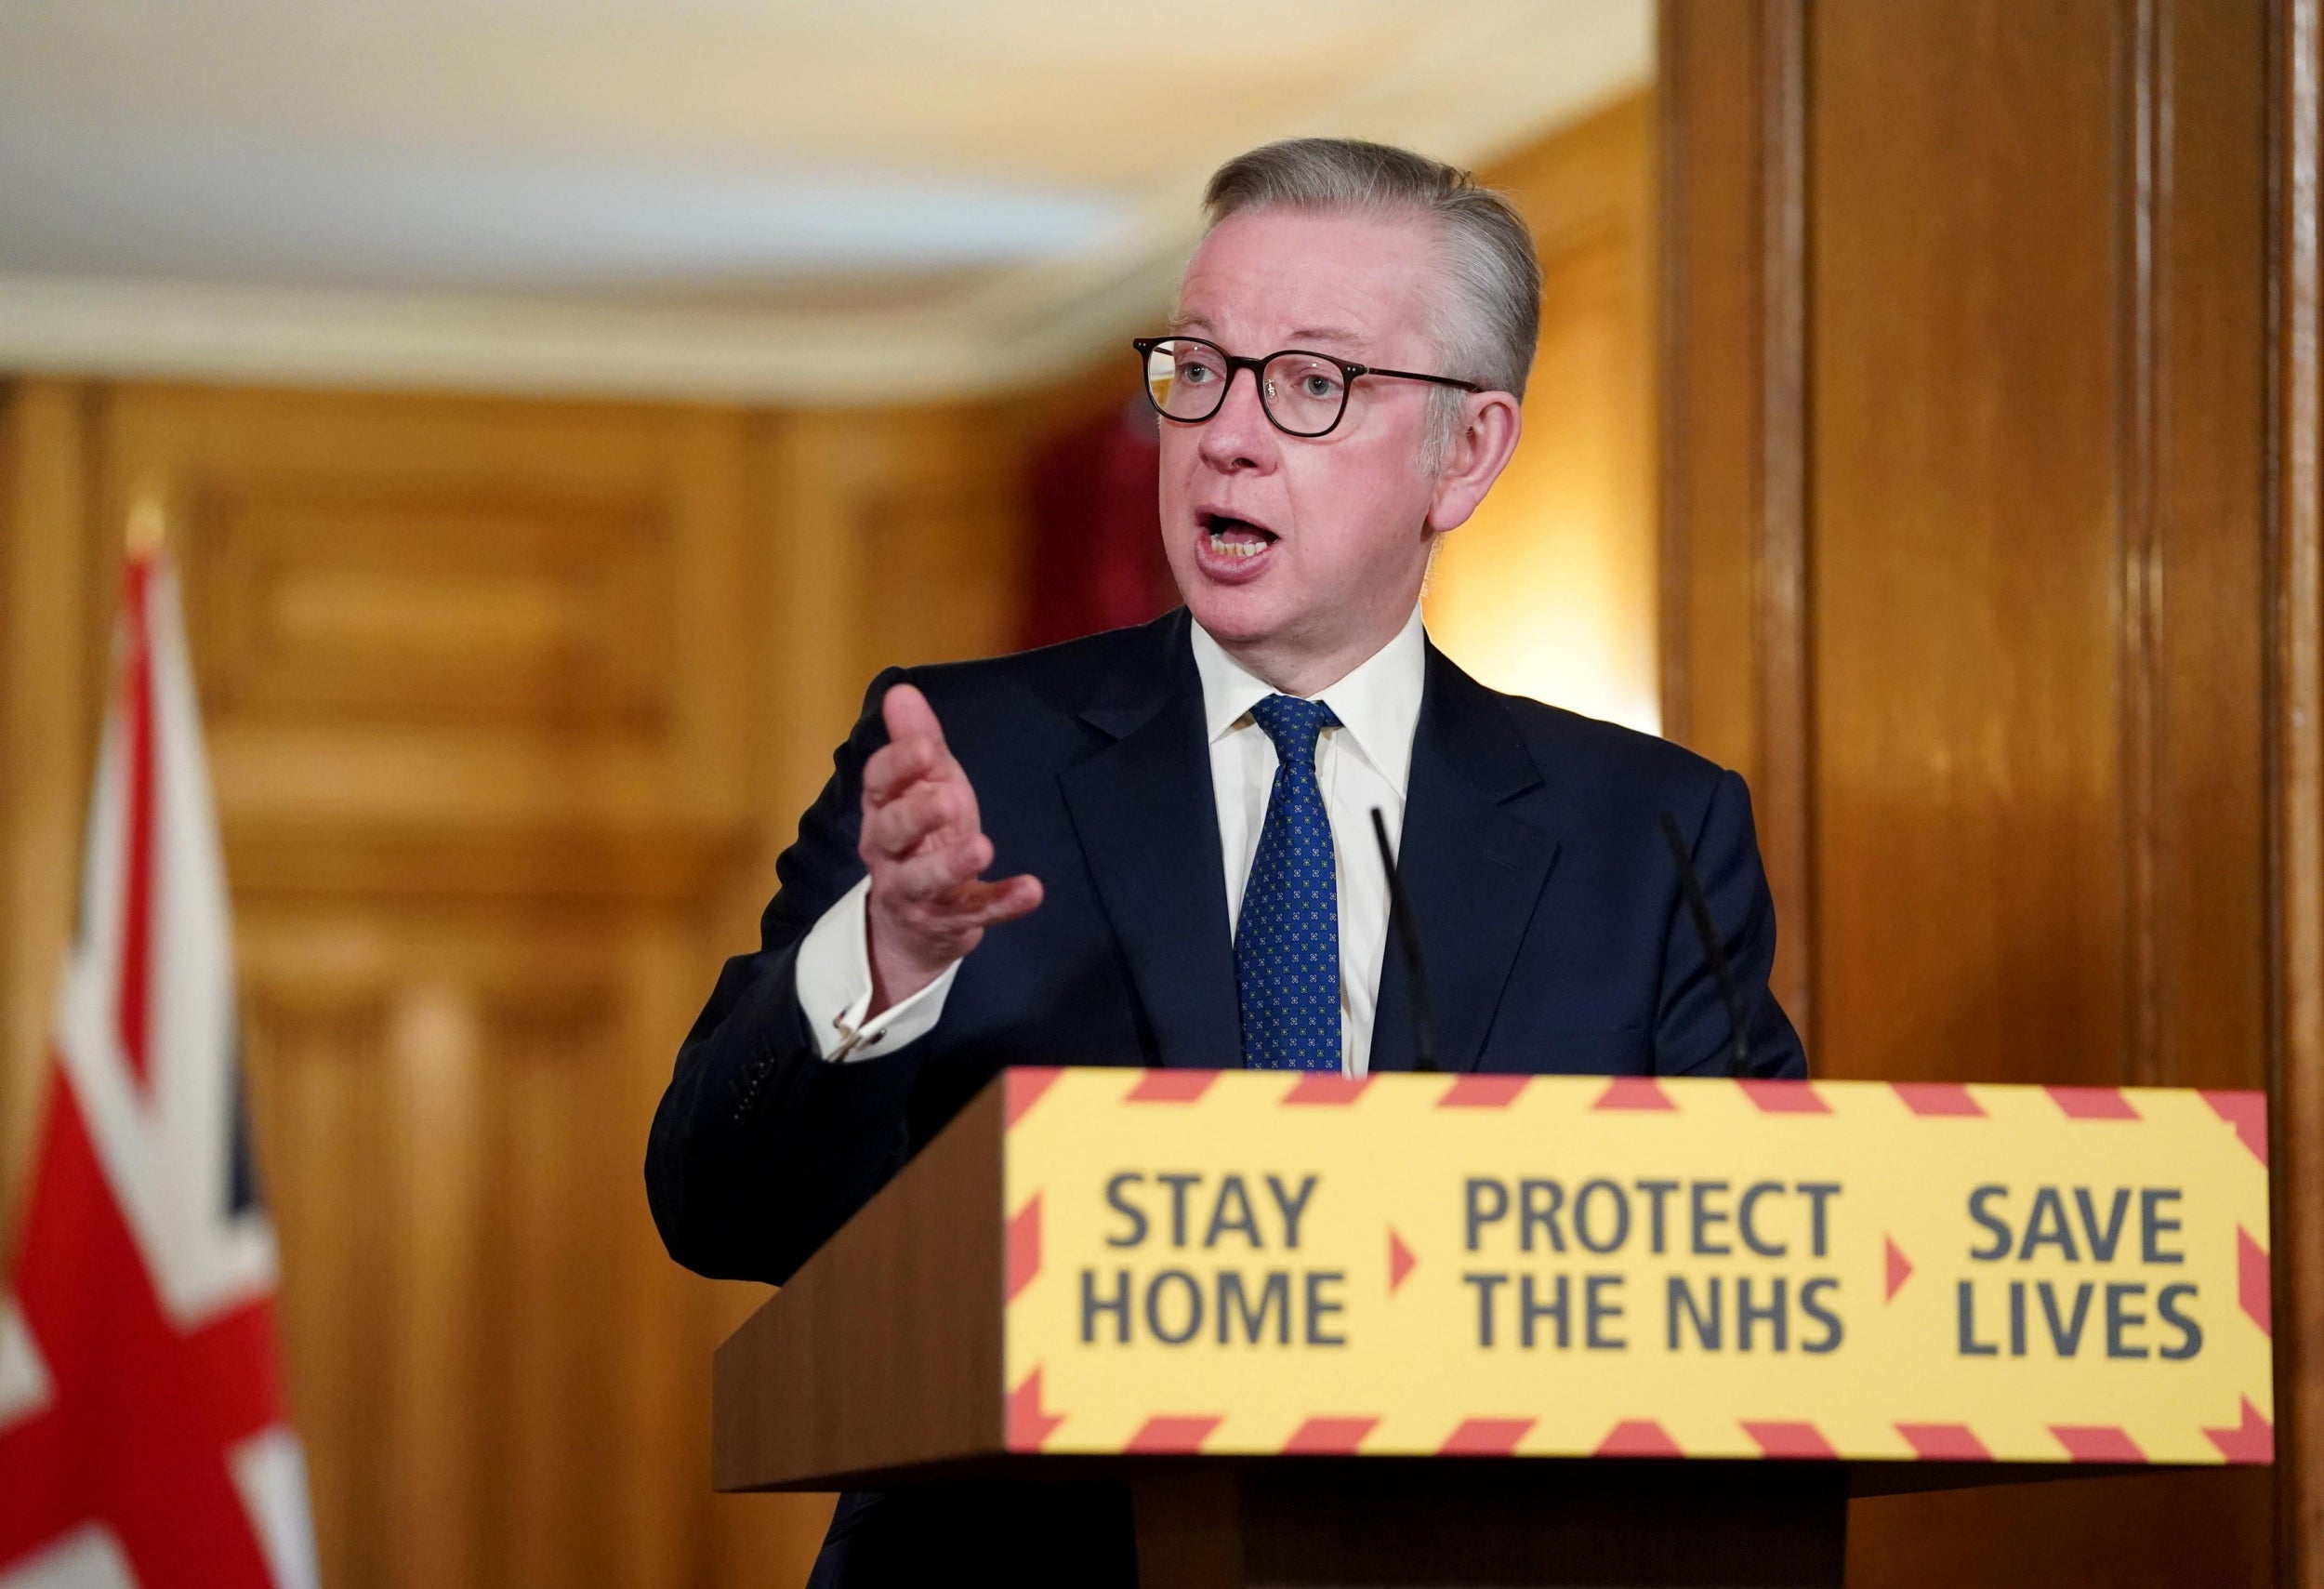 Michael Gove talks of the need for new leadership. He could not lead a rat out of a sewer with a slice of cake thumbnail